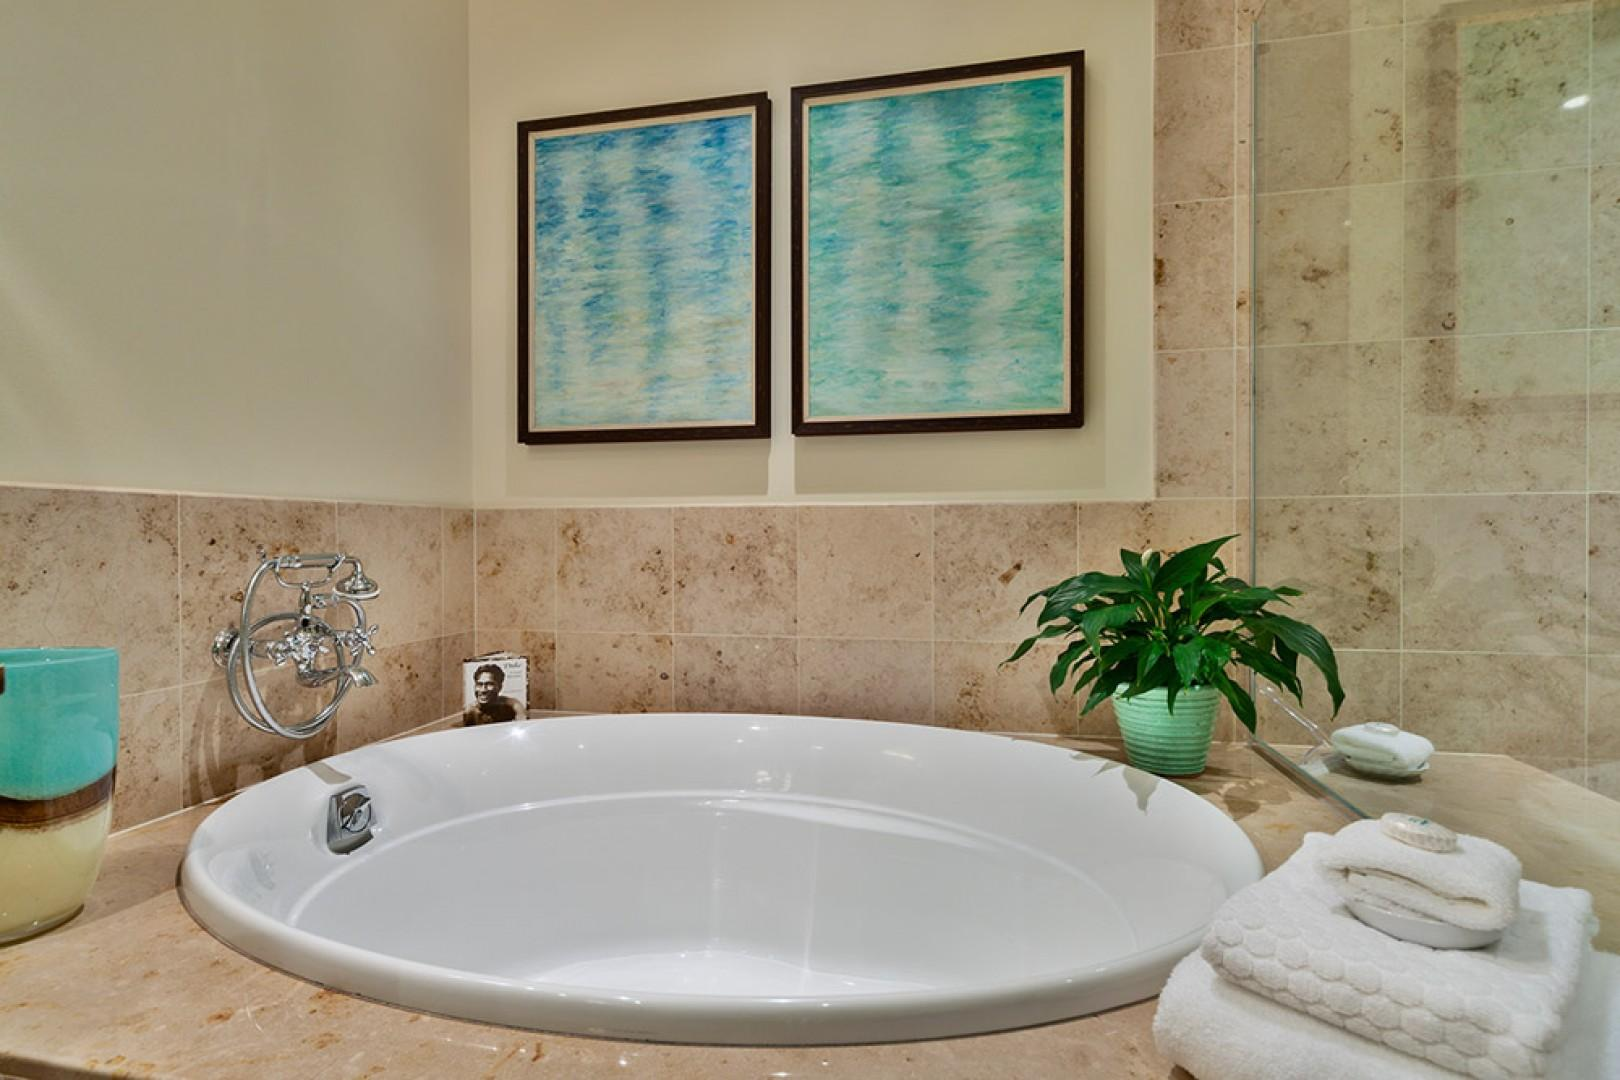 K507 Wailea Seashore Suite - Master Bedroom En-Suite Bathroom with Deep Soaking Tub, Glass Shower, Private WC, Dual Vanities, Walk-In Closet, Hair Dryers, Scale, Make Up Mirrors, Plush Cotton Bathrobes, Toiletries, Abundant Fluffy Towels, and more.